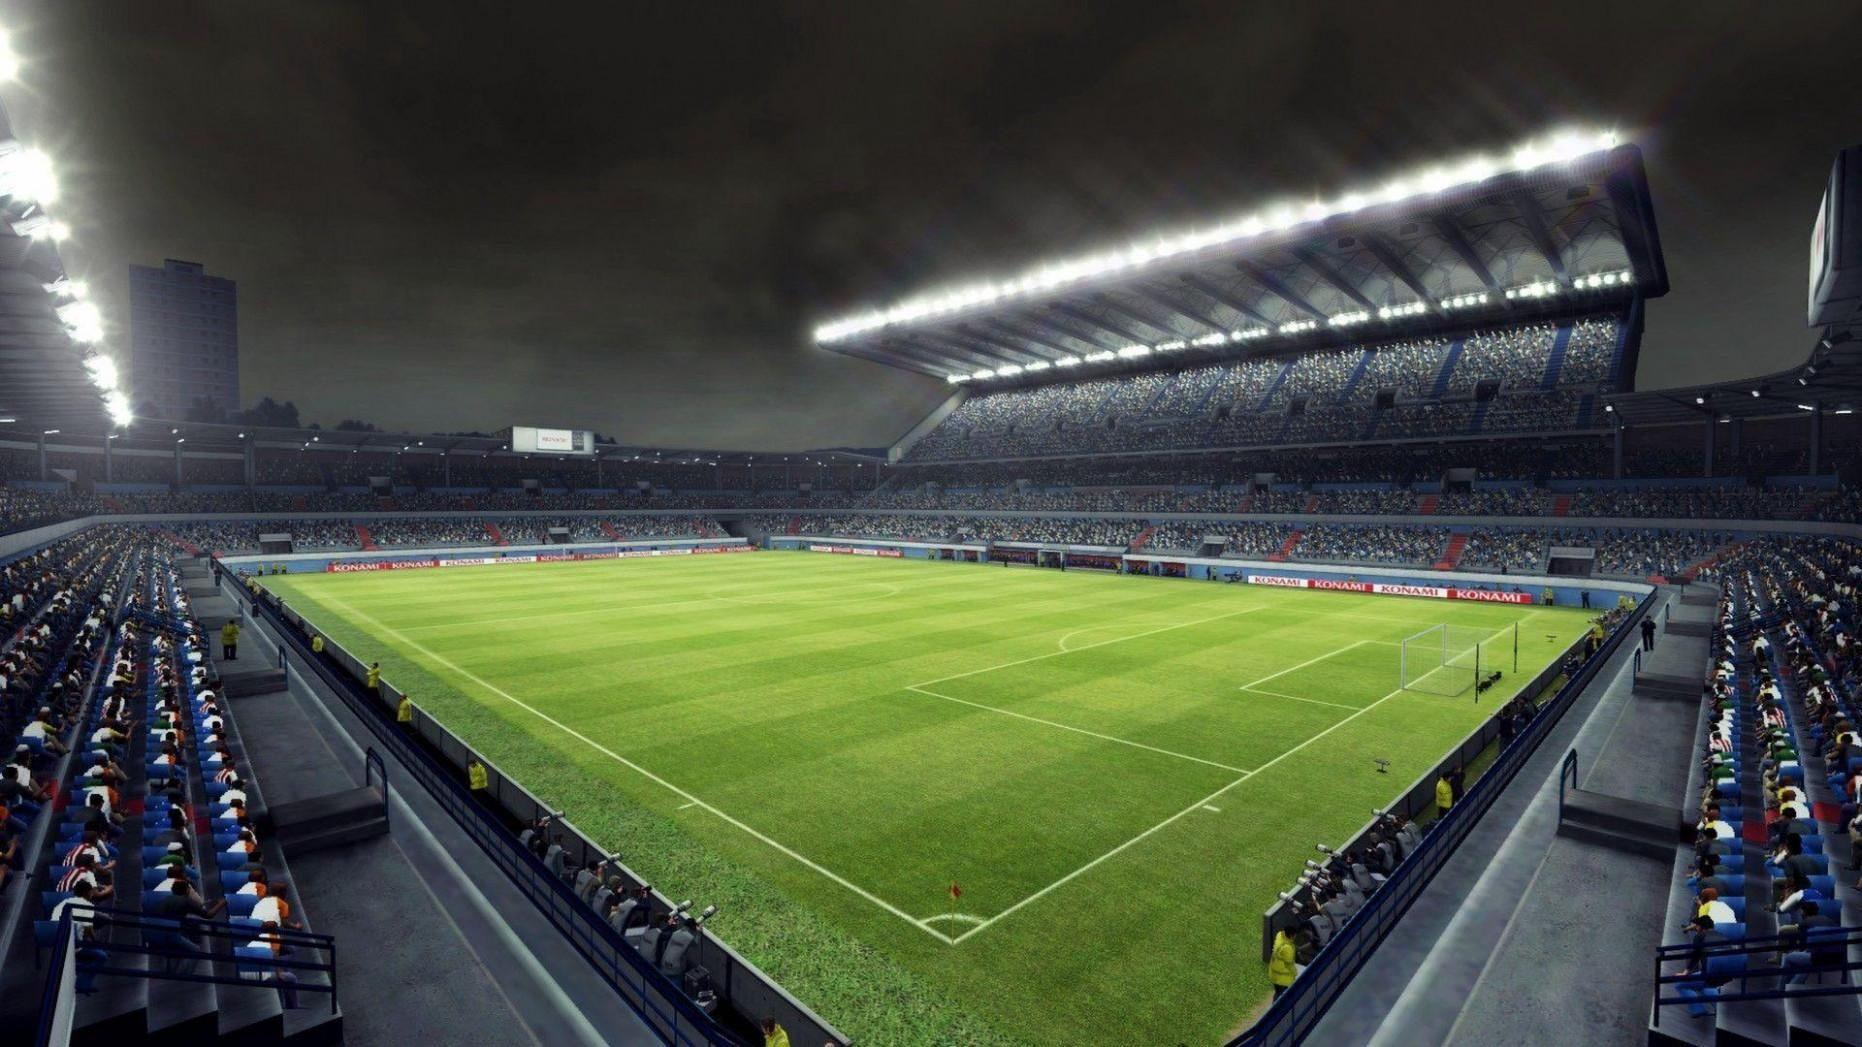 Soccer Field Wallpaper 57 Images Soccer Stadium Stadium Wallpaper Soccer Field